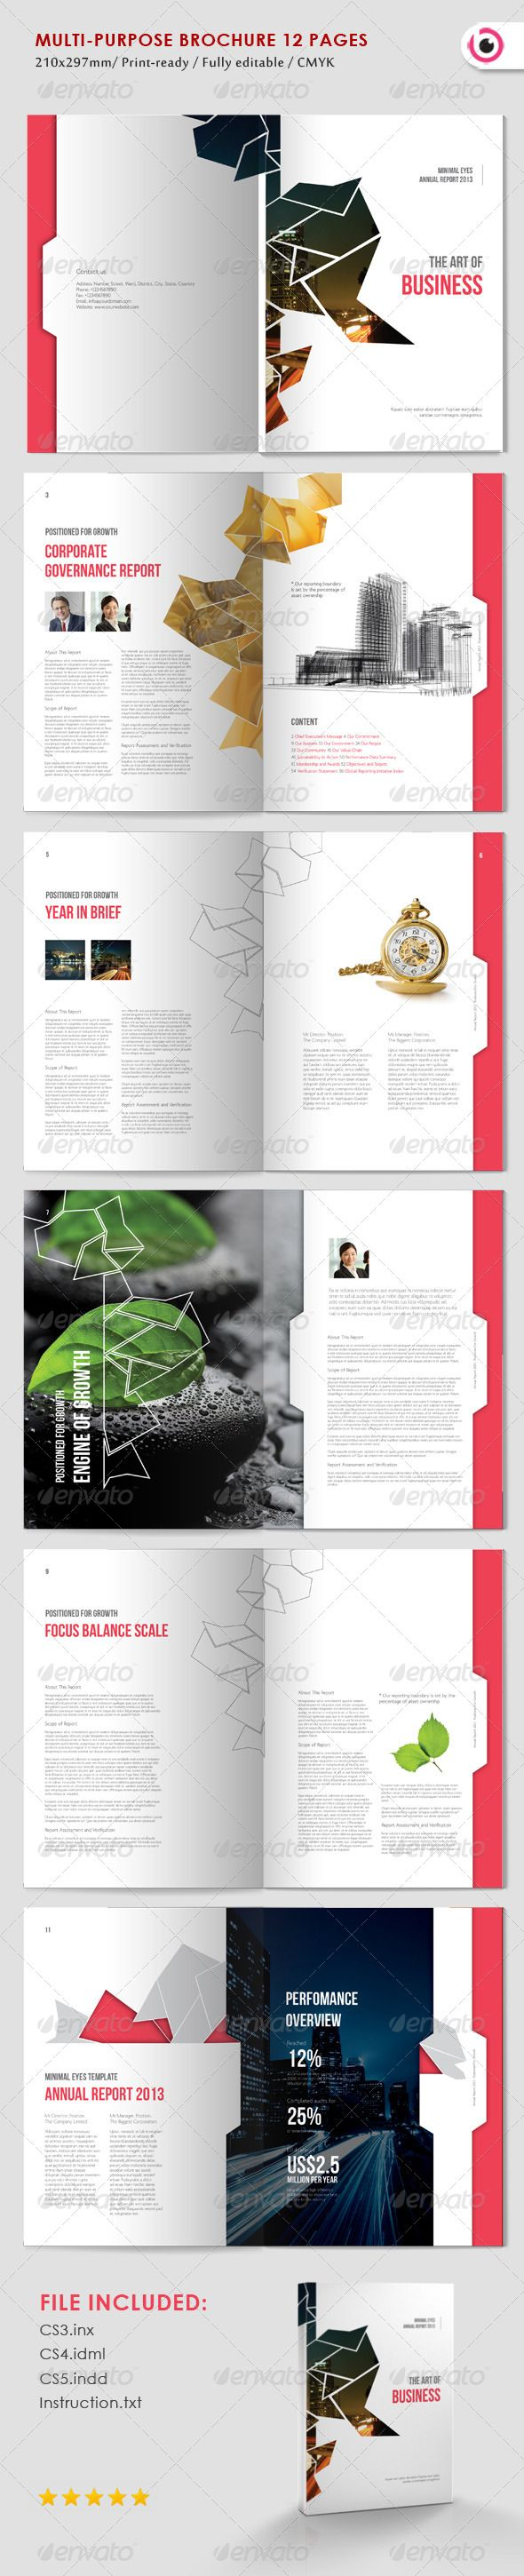 Multipurpose Abstract Brochure GraphicRiver Pages InDesign - Two page brochure template